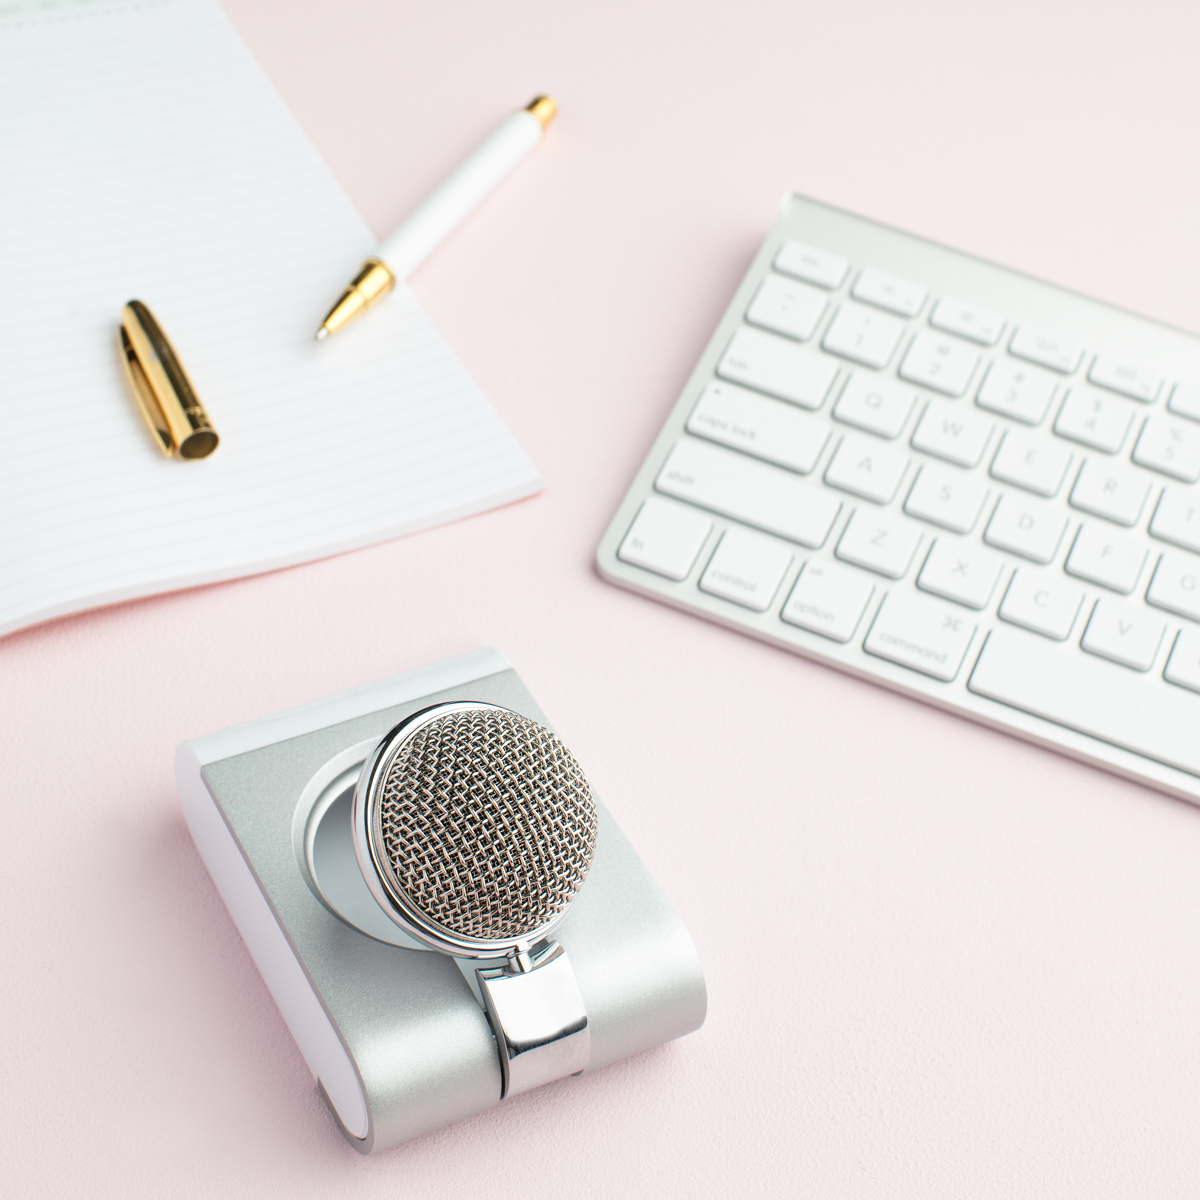 Content Creators Hub - Newly launched and ready to go. We are helping other women creators bring their visions to life! From coaching to design and implementation, we are ready to help you get started.